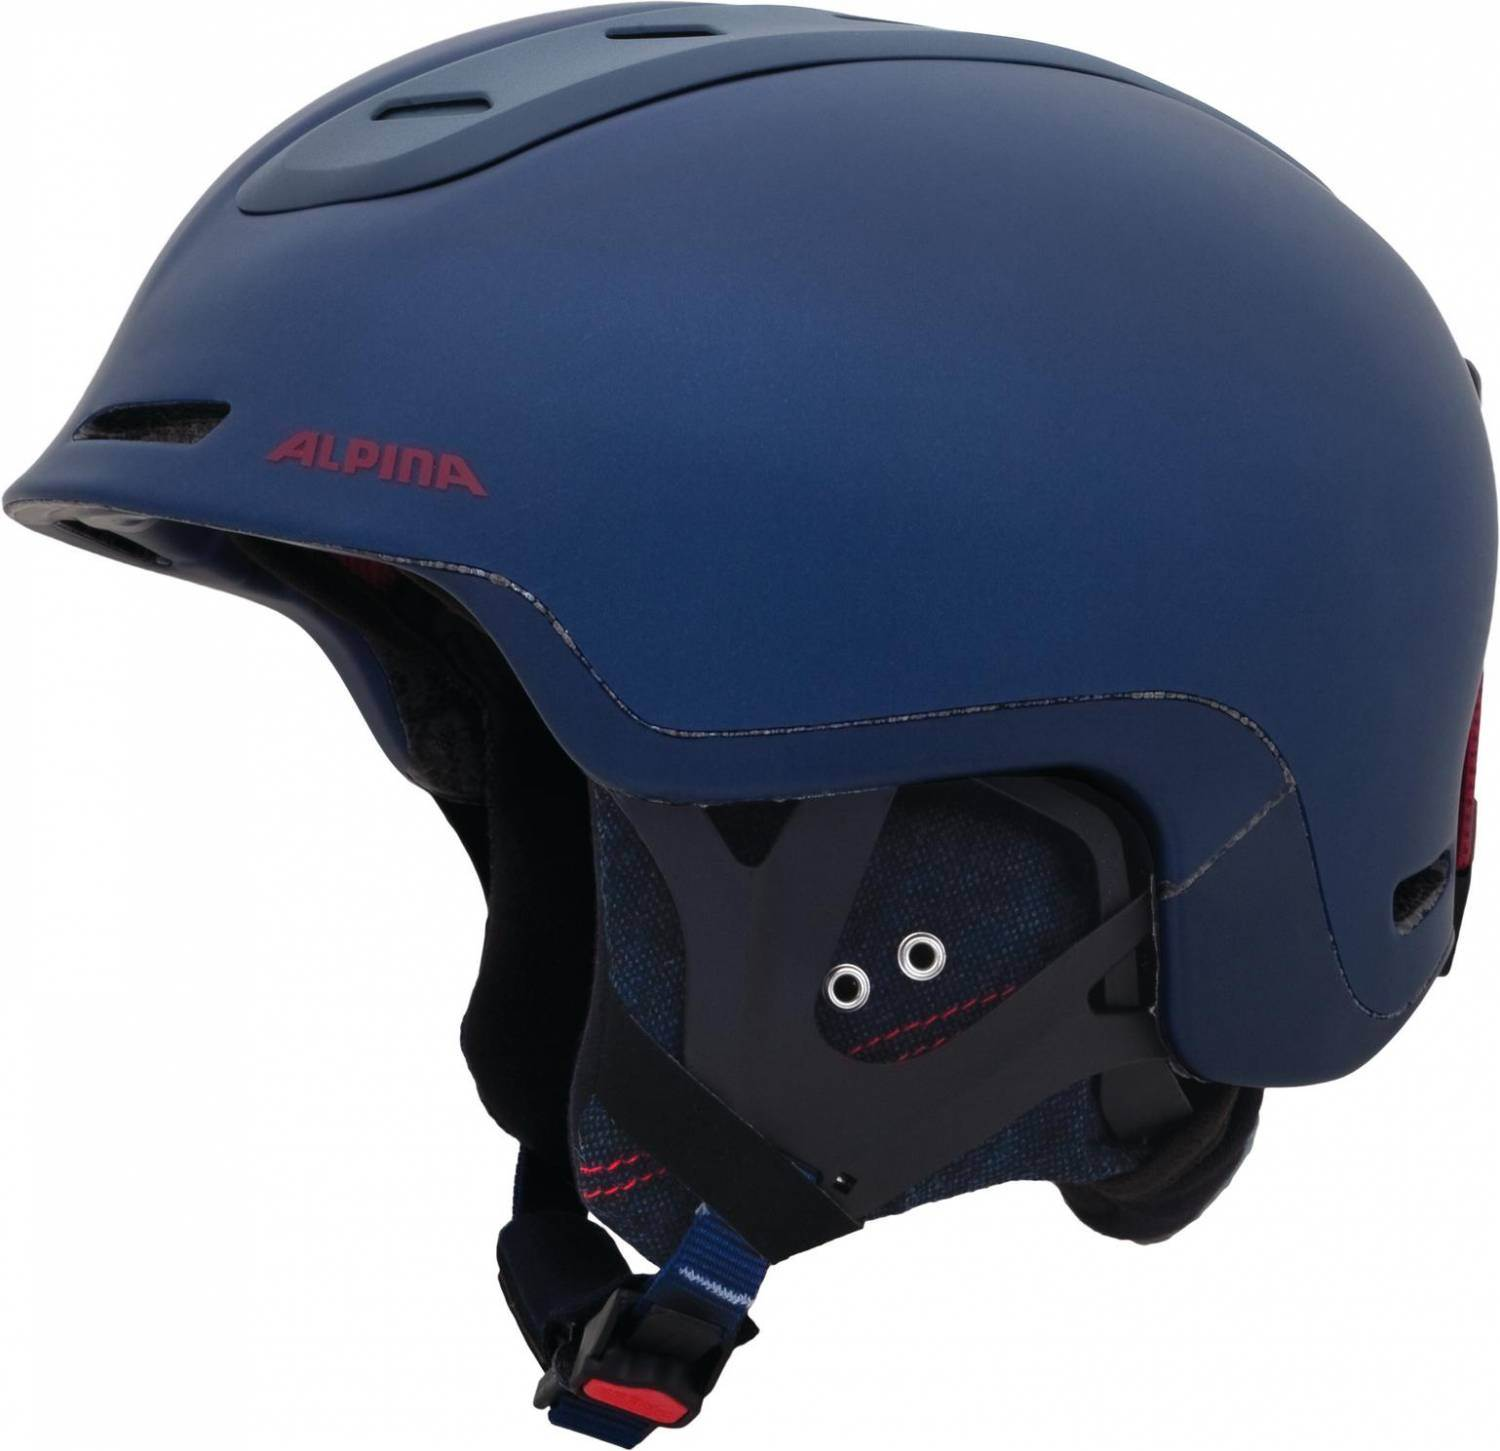 alpina-spine-freeride-skihelm-gr-ouml-szlig-e-52-56-cm-81-nightblue-bordeaux-matt-